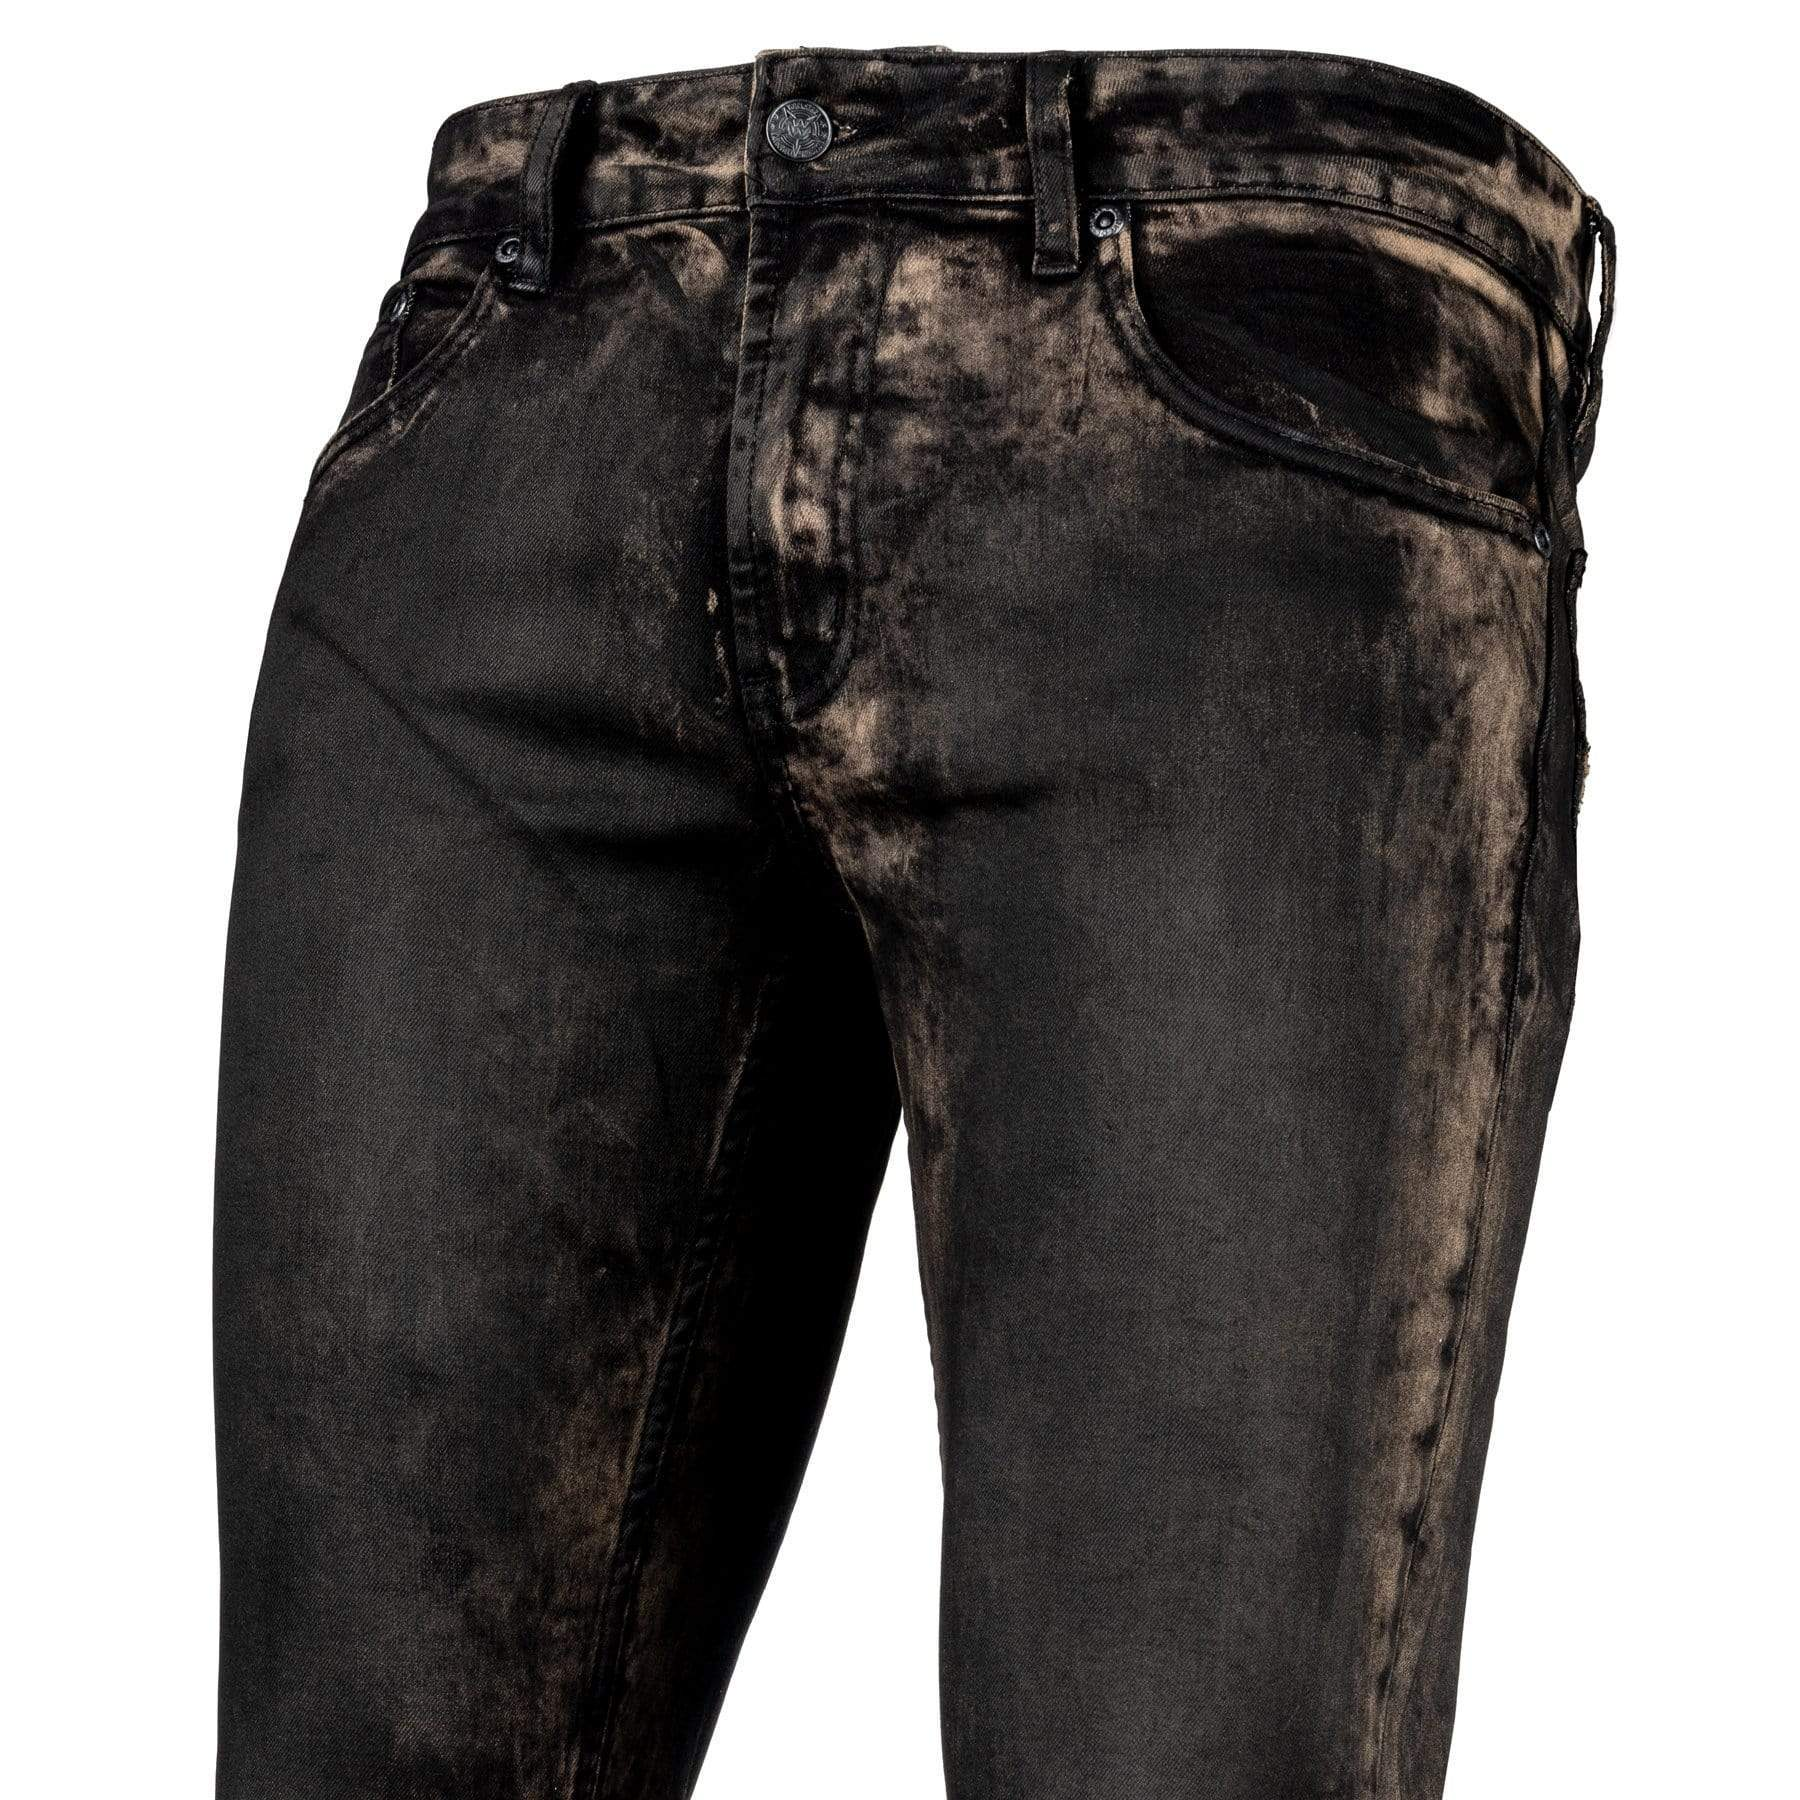 Wornstar Hellraiser Jeans - Raw Umber - The 'Golden' Hellraiser